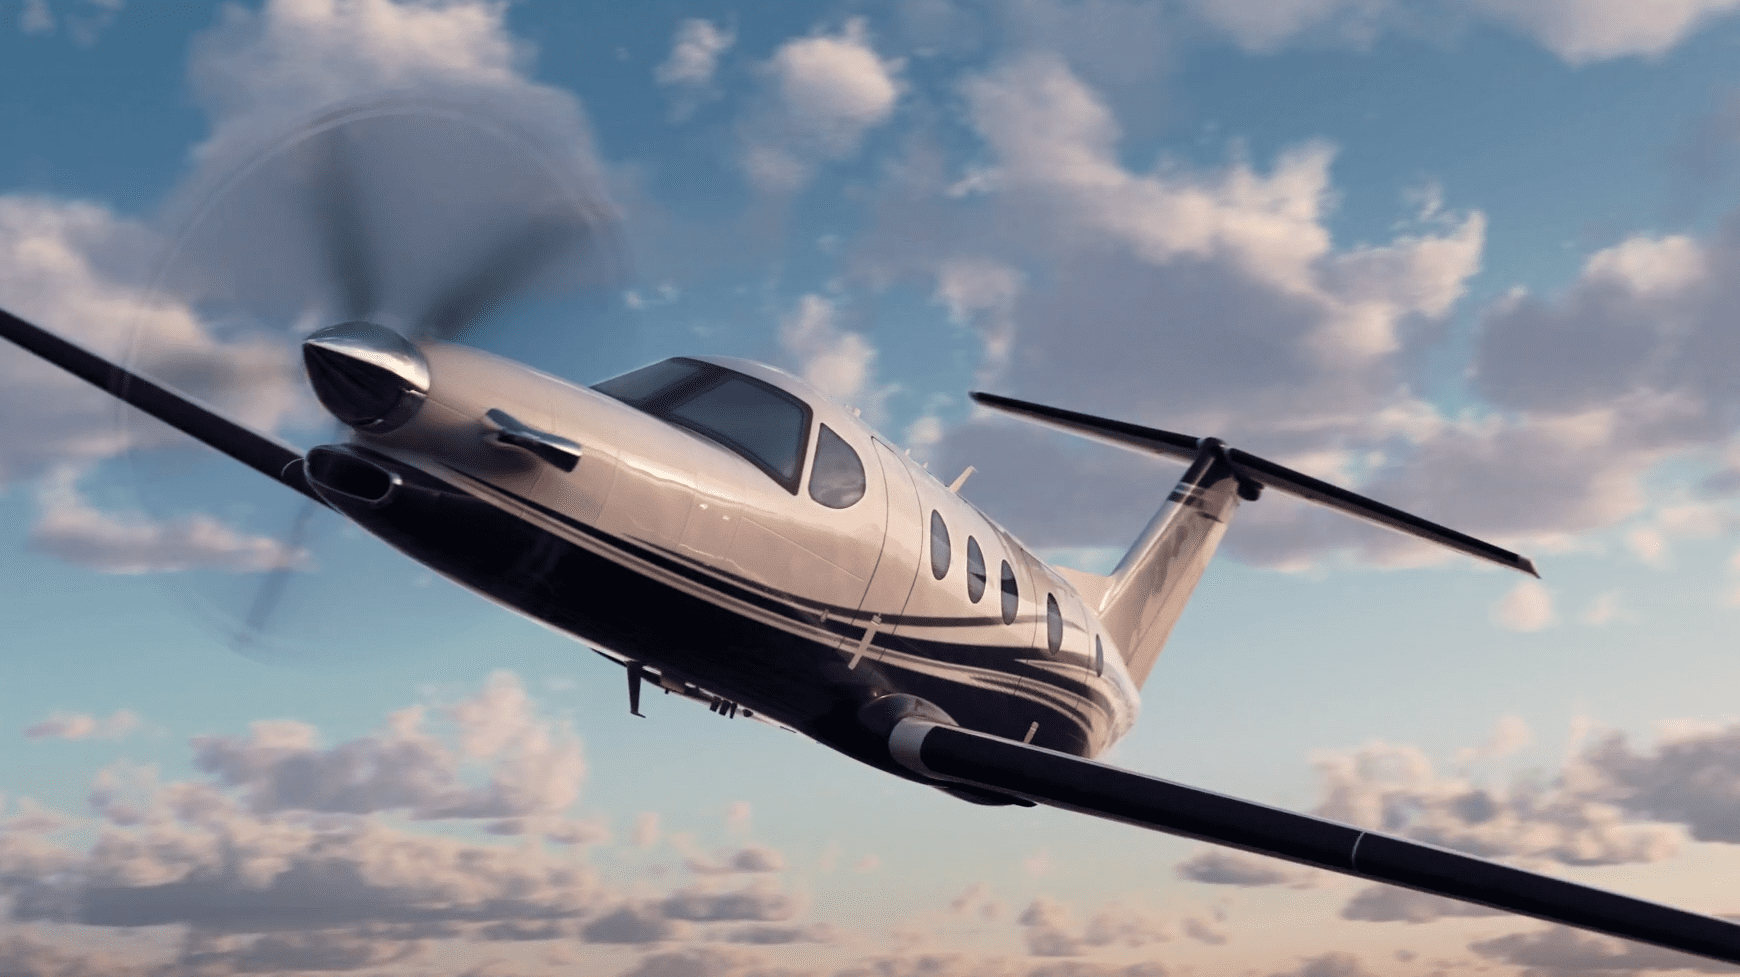 Subtracting with additive: A deep dive into the development of GE's next-gen turboprop